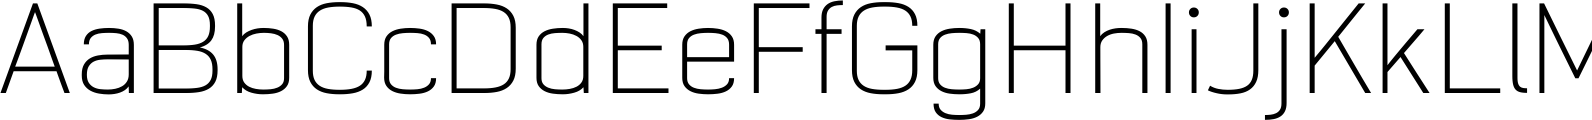 NotaBene ExtraLight Font